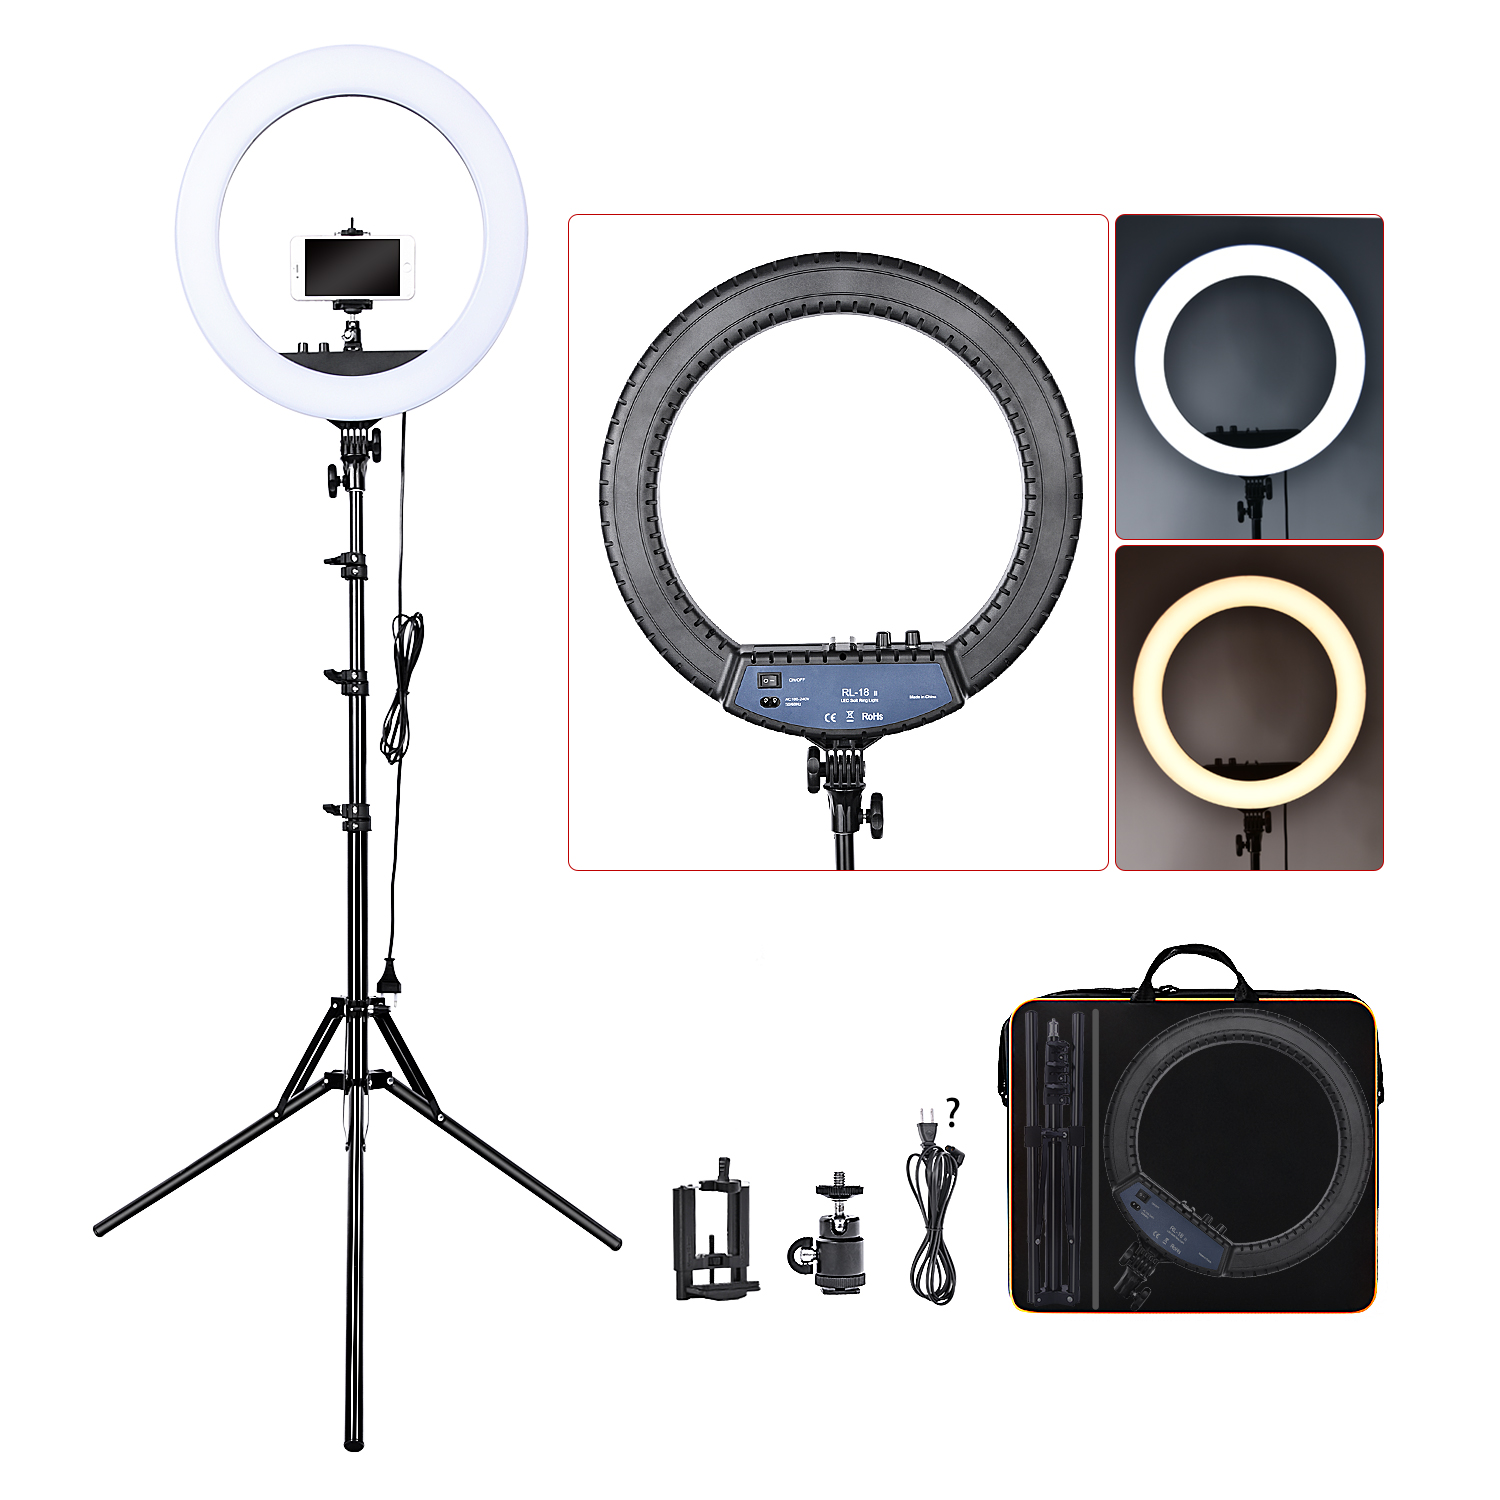 H24d1488df46647aea56c013302d7d92er FOSOTO RL-18II Led Ring Light 18 Inch Ring Lamp 55W Ringlight Photography Lamp With Tripod Stand For Phone Makeup Youtube Tiktok